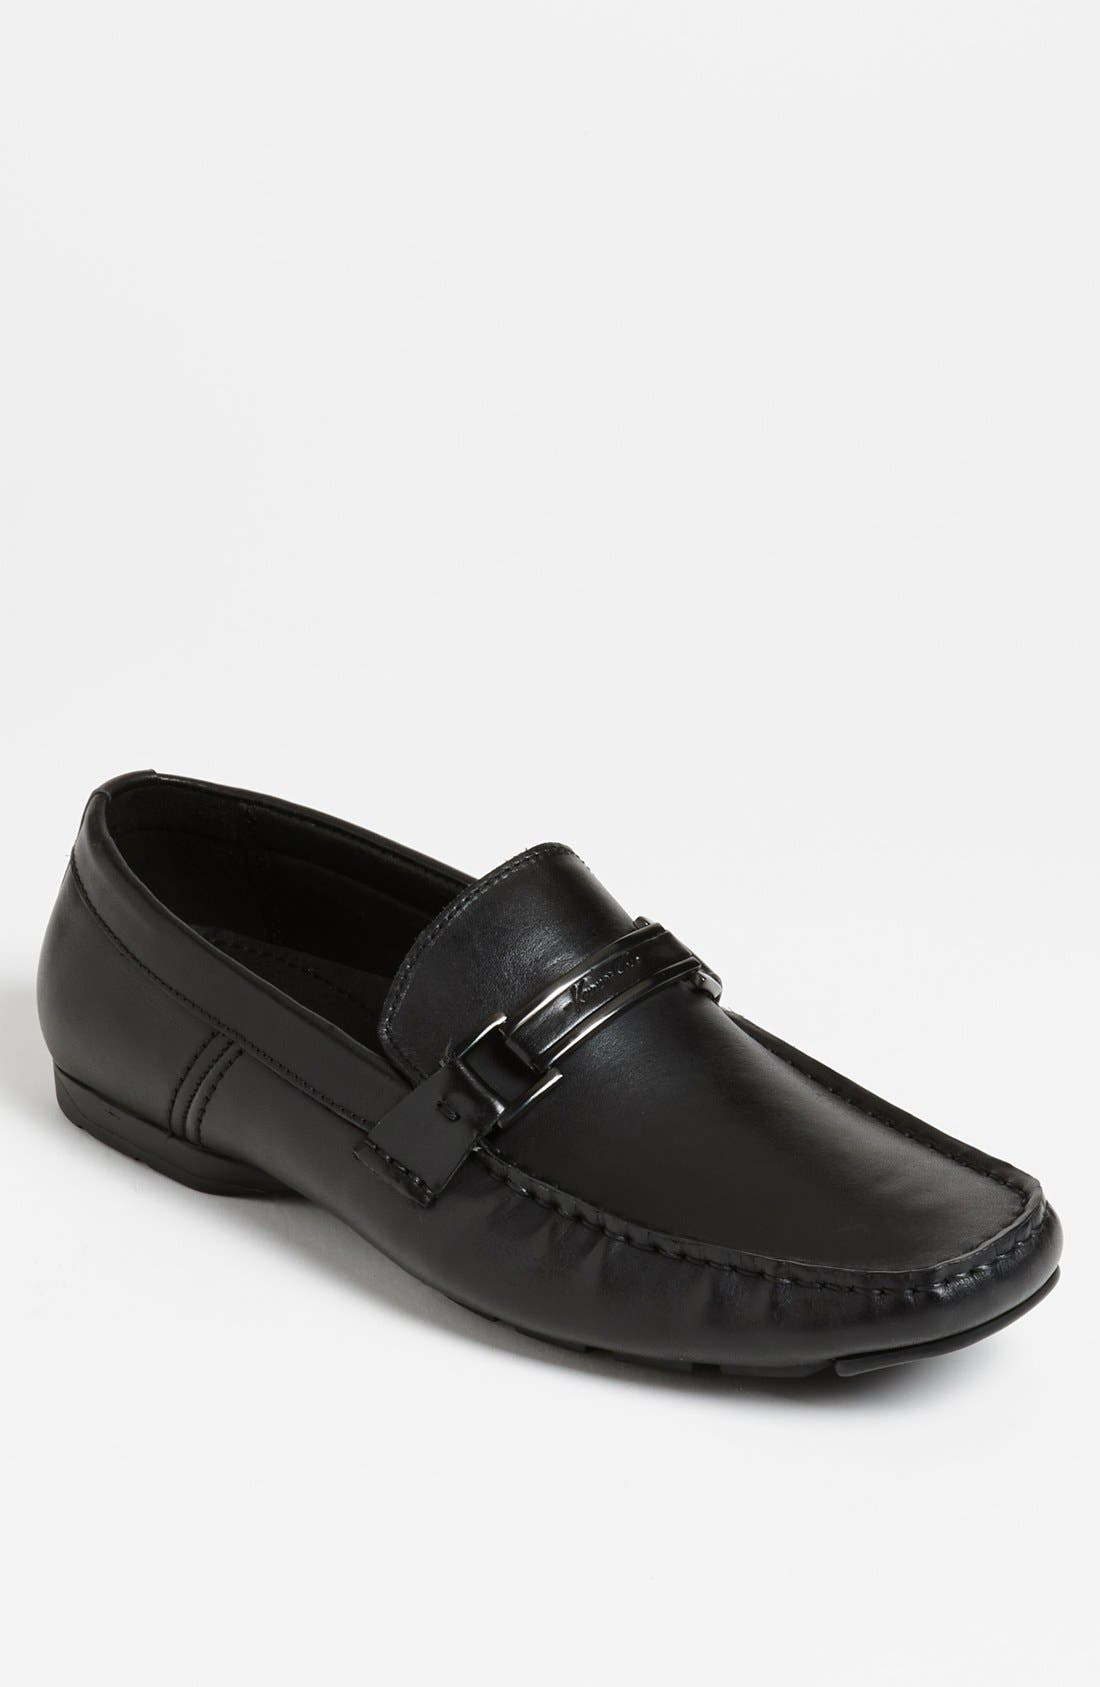 Alternate Image 1 Selected - Kenneth Cole New York 'Private Is-Land' Loafer